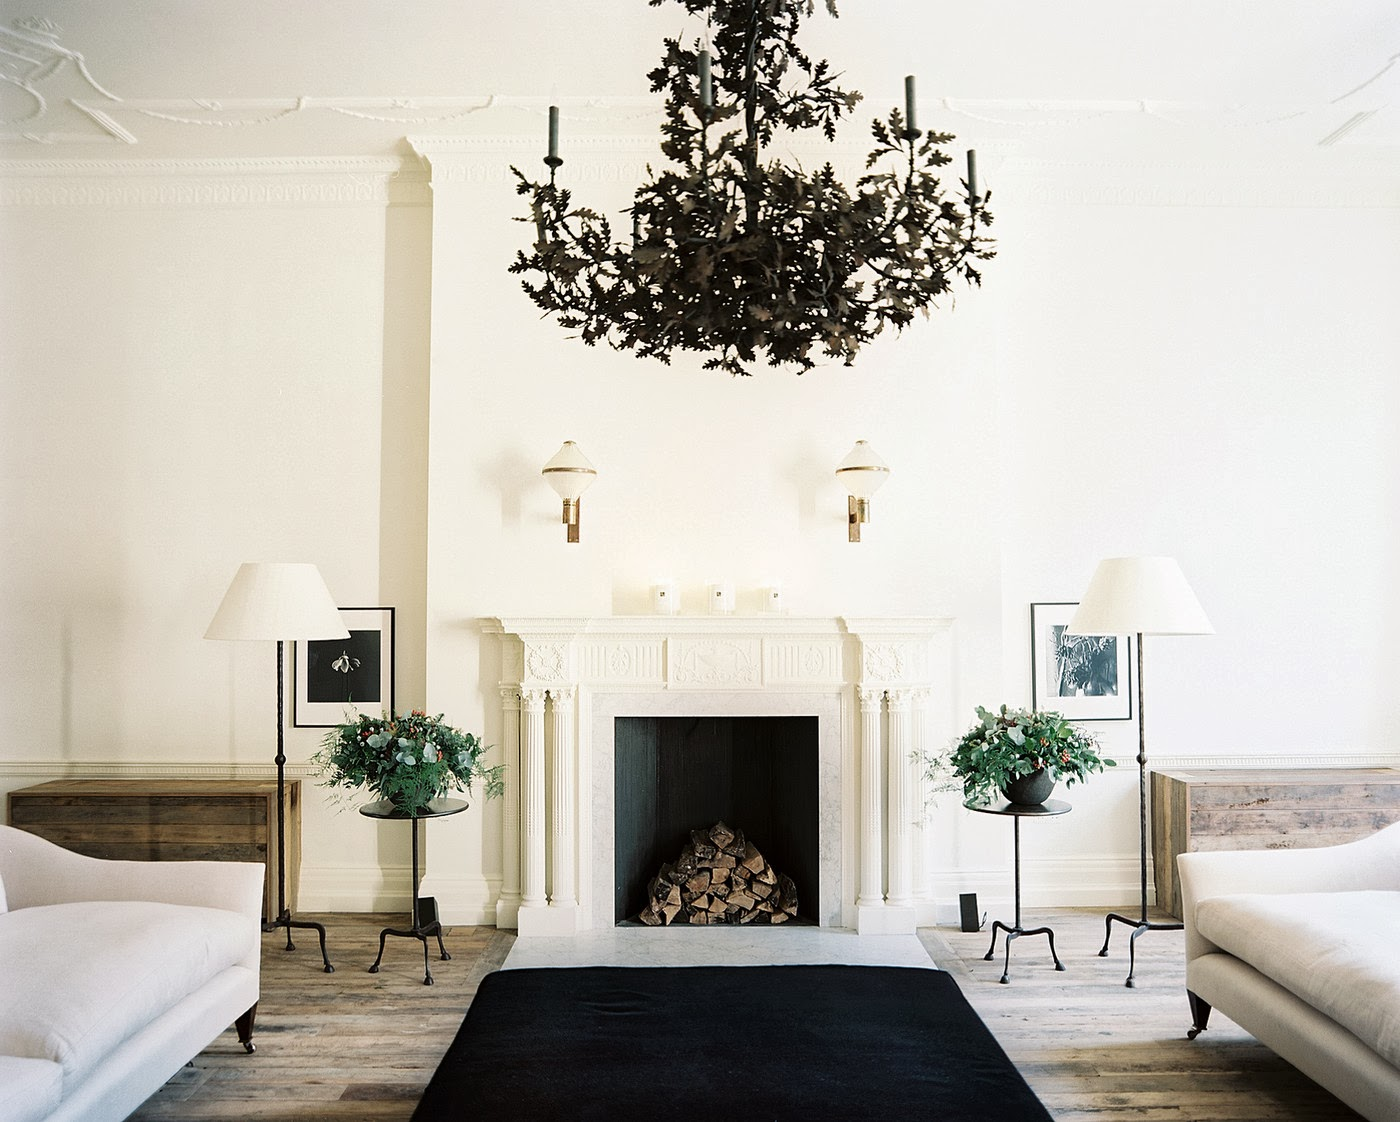 If deep rich walls are too intense to live with, consider a dramatic edgy accent with a black chandelier    photo from Trendir.com